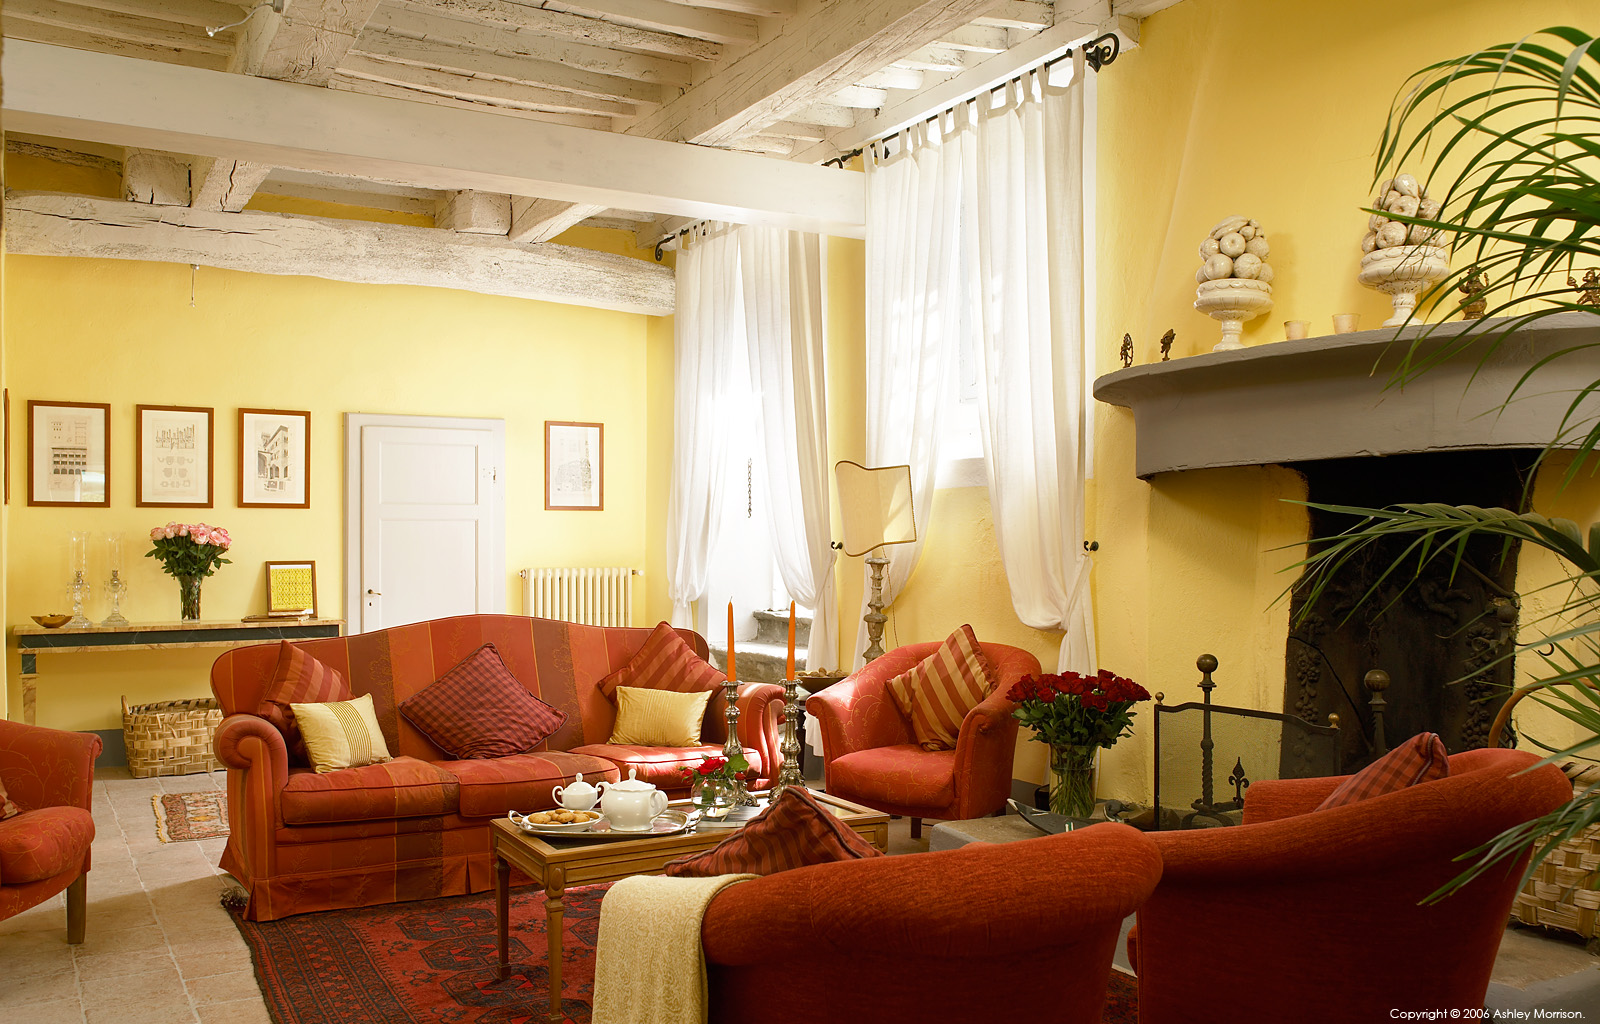 The sitting room in Dizzi Alfons' 18th-century former farmhouse which is set in a rural estate near the medieval town of Lucca in the northern Tuscany region of Italy.